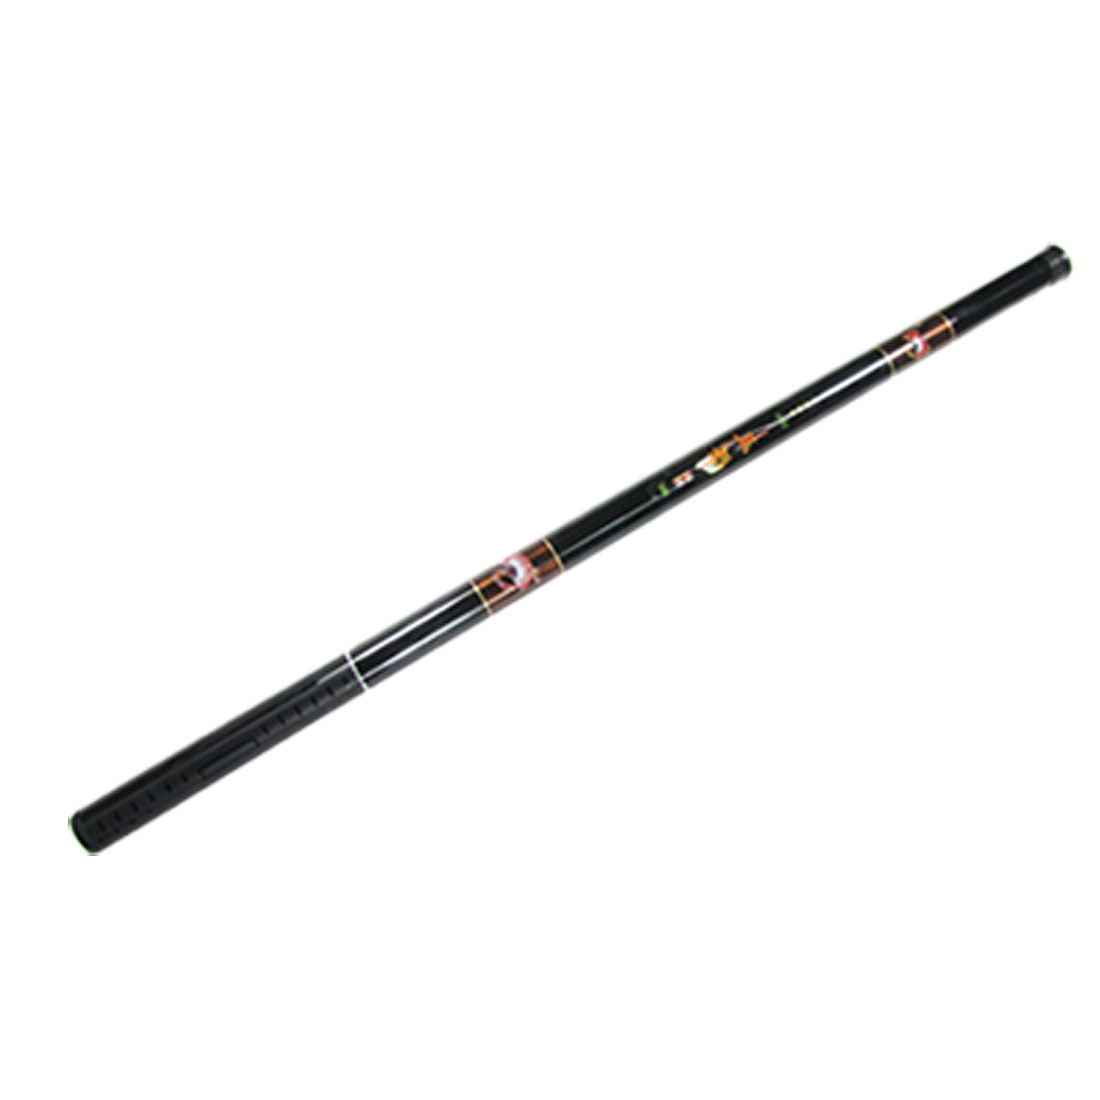 Angling Tackle Telescoping 4.85m 10 Sections Pole Fishing Rod